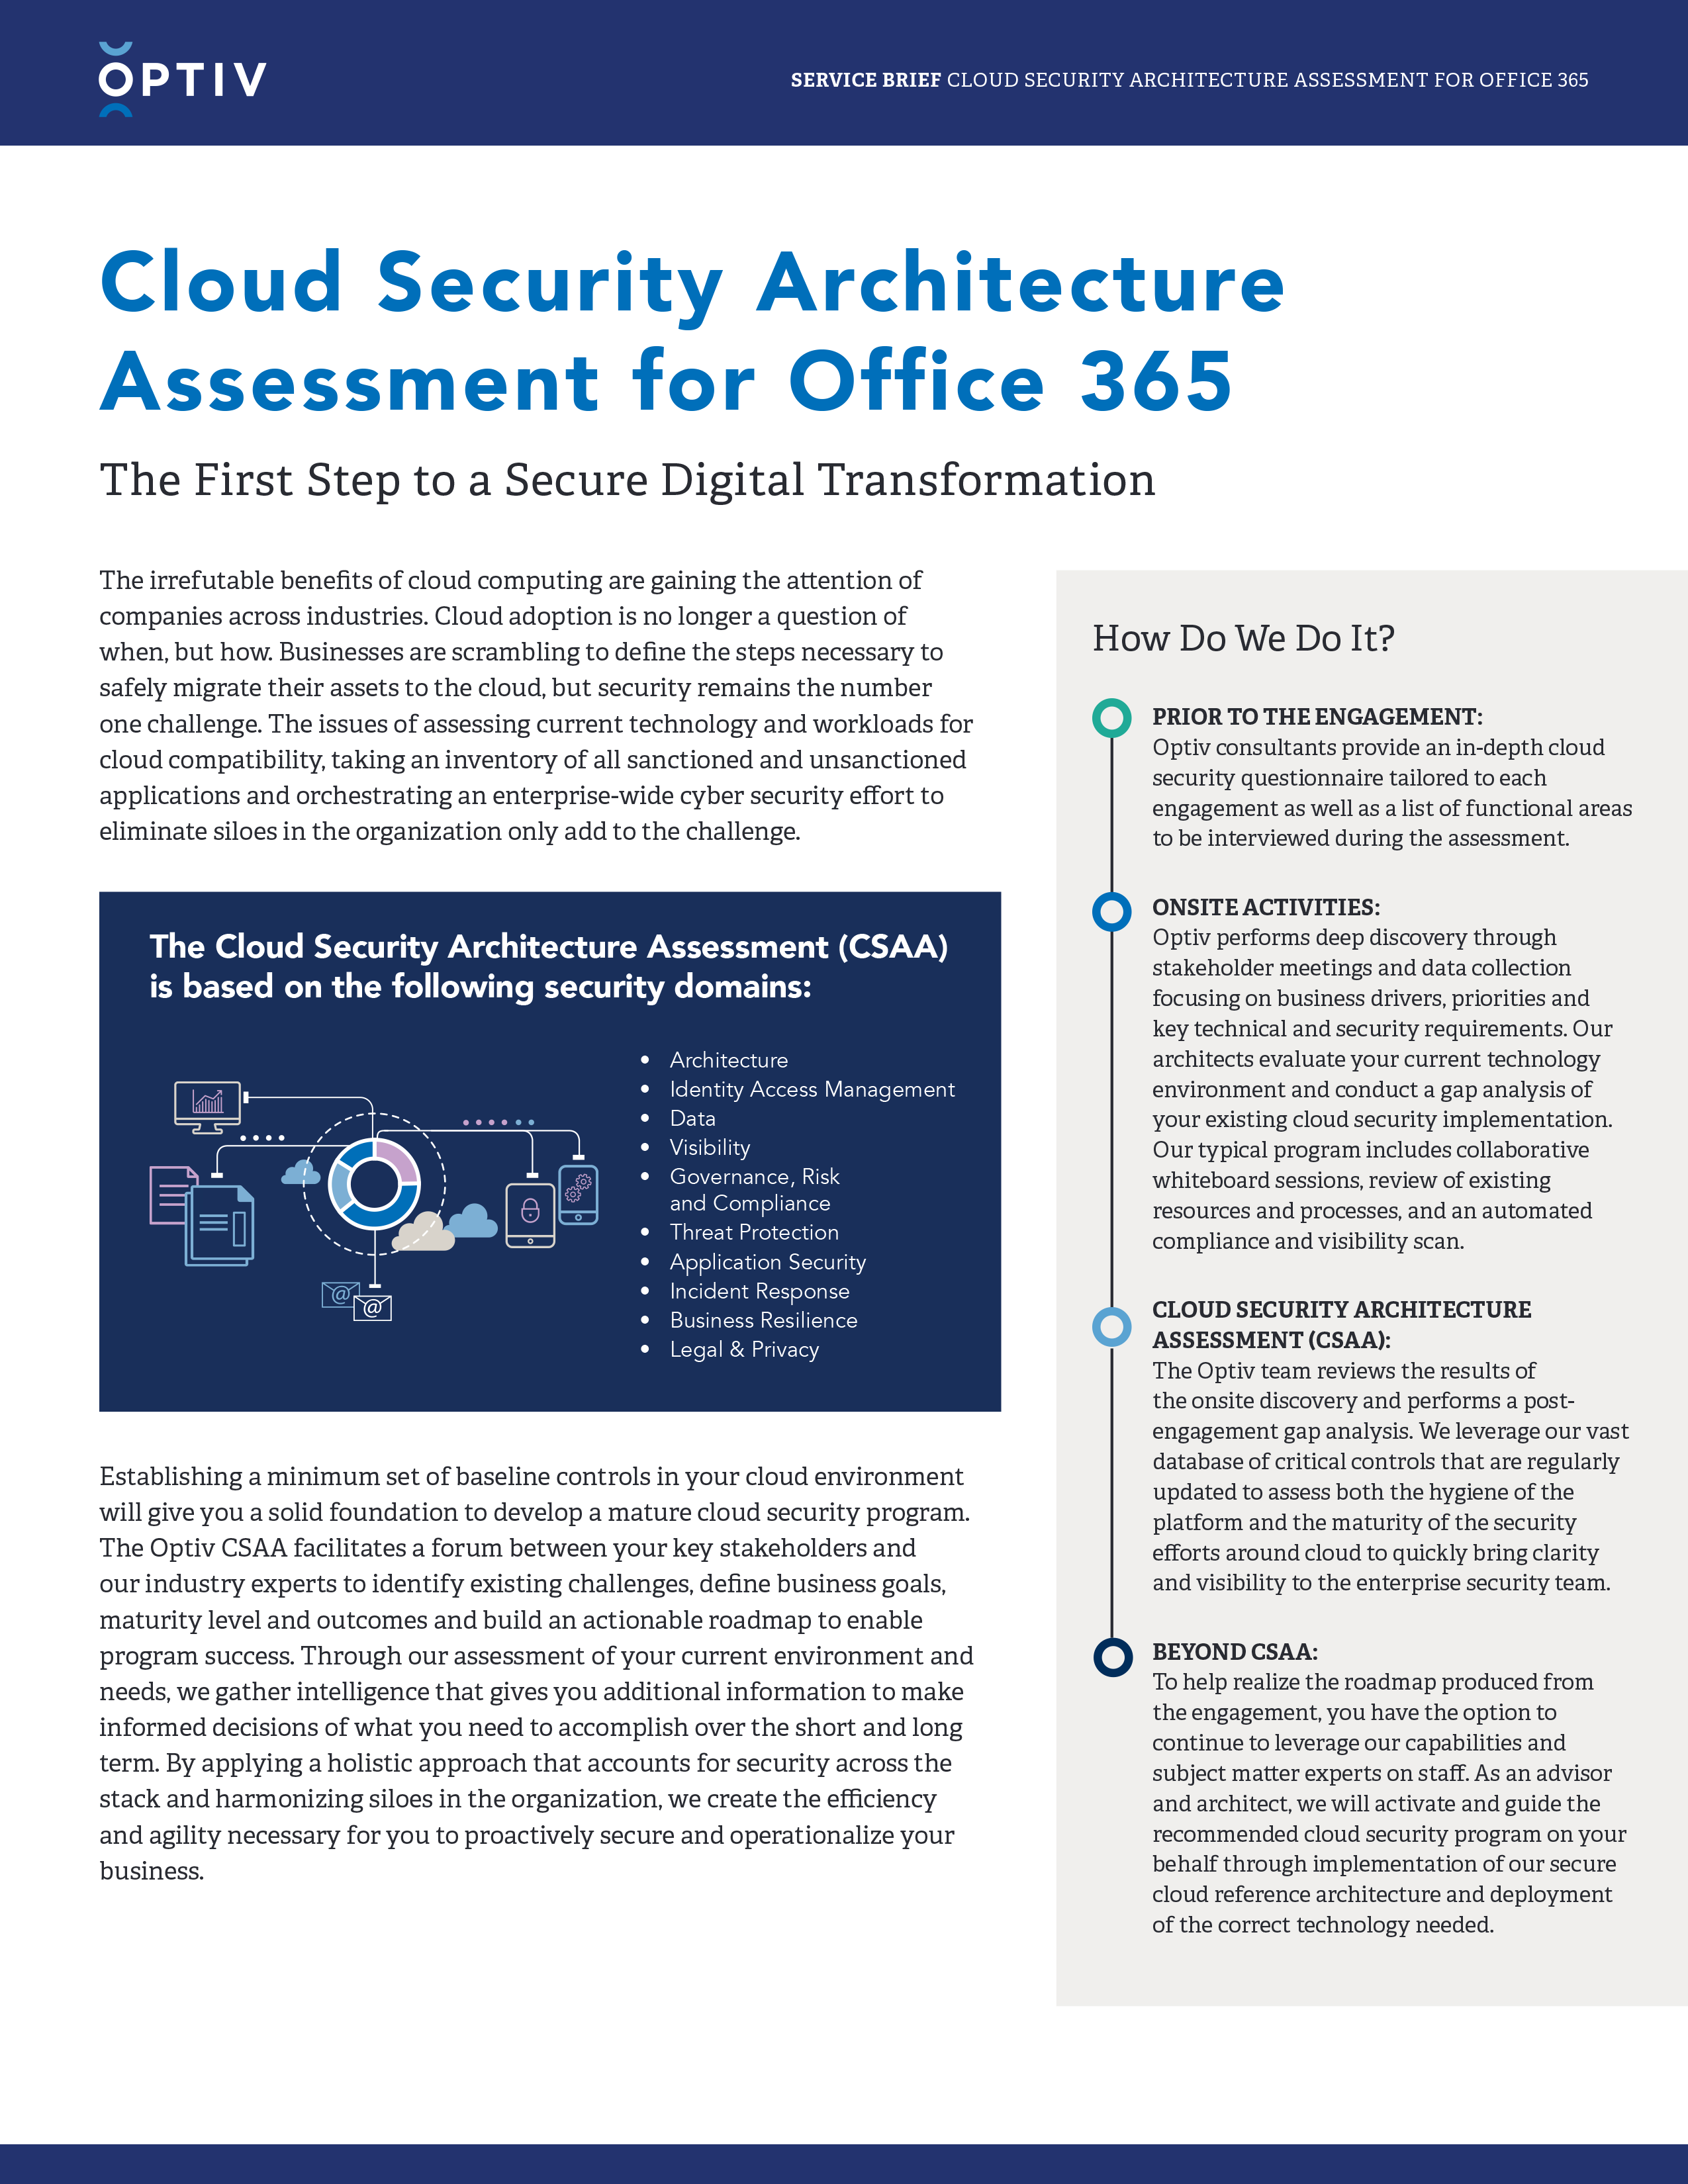 Cloud_Security_Architecture__Assessment_Service_Brief_365_v2-1